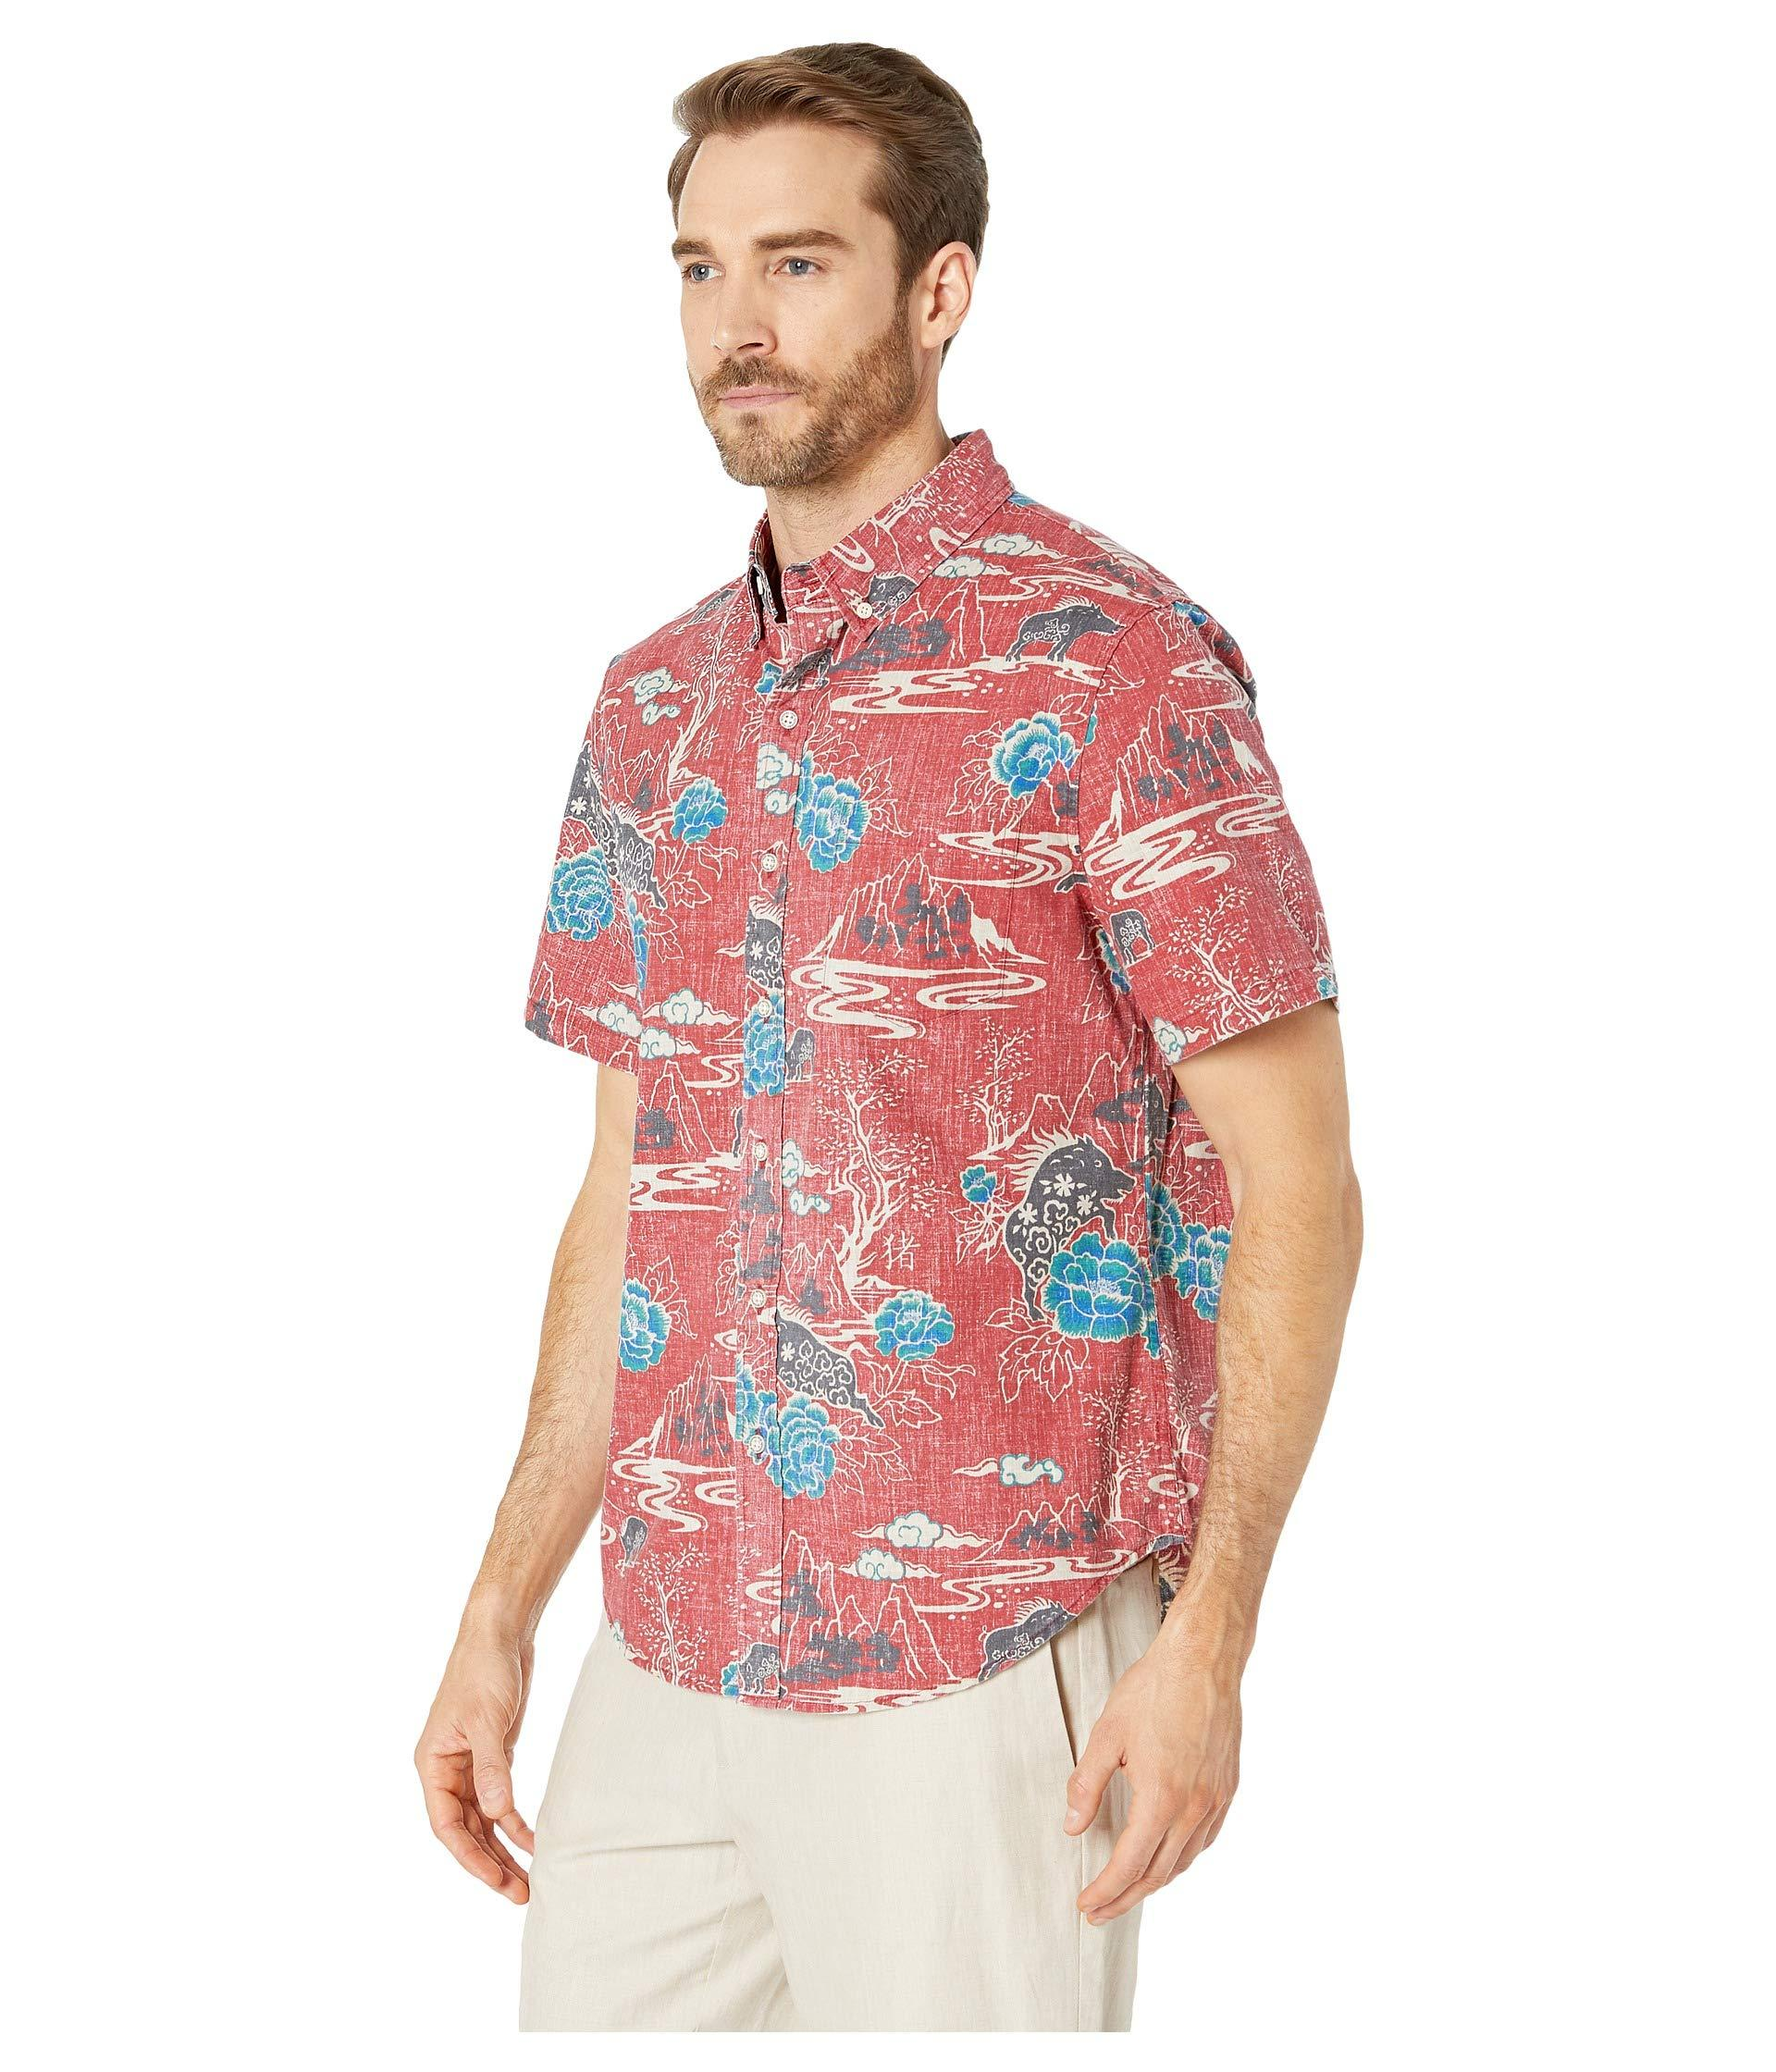 386450c6 Lyst - Reyn Spooner Year Of The Boar Tailored Fit Hawaiian Shirt (garnet)  Men's Short Sleeve Button Up in Red for Men